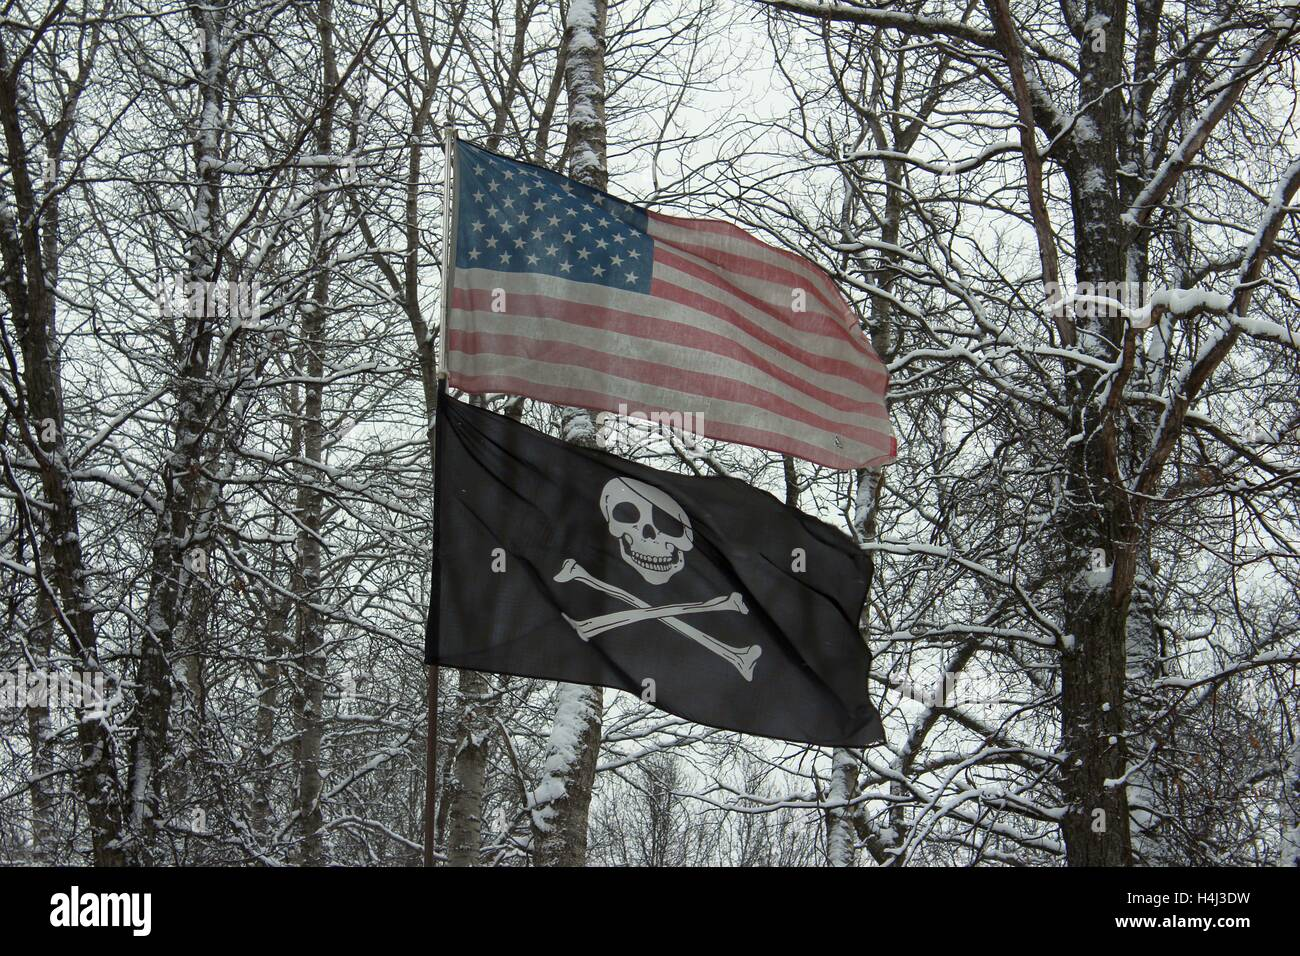 Faded Old Glory And Jolly Roger Share A Pole on a Winter's Day - Stock Image